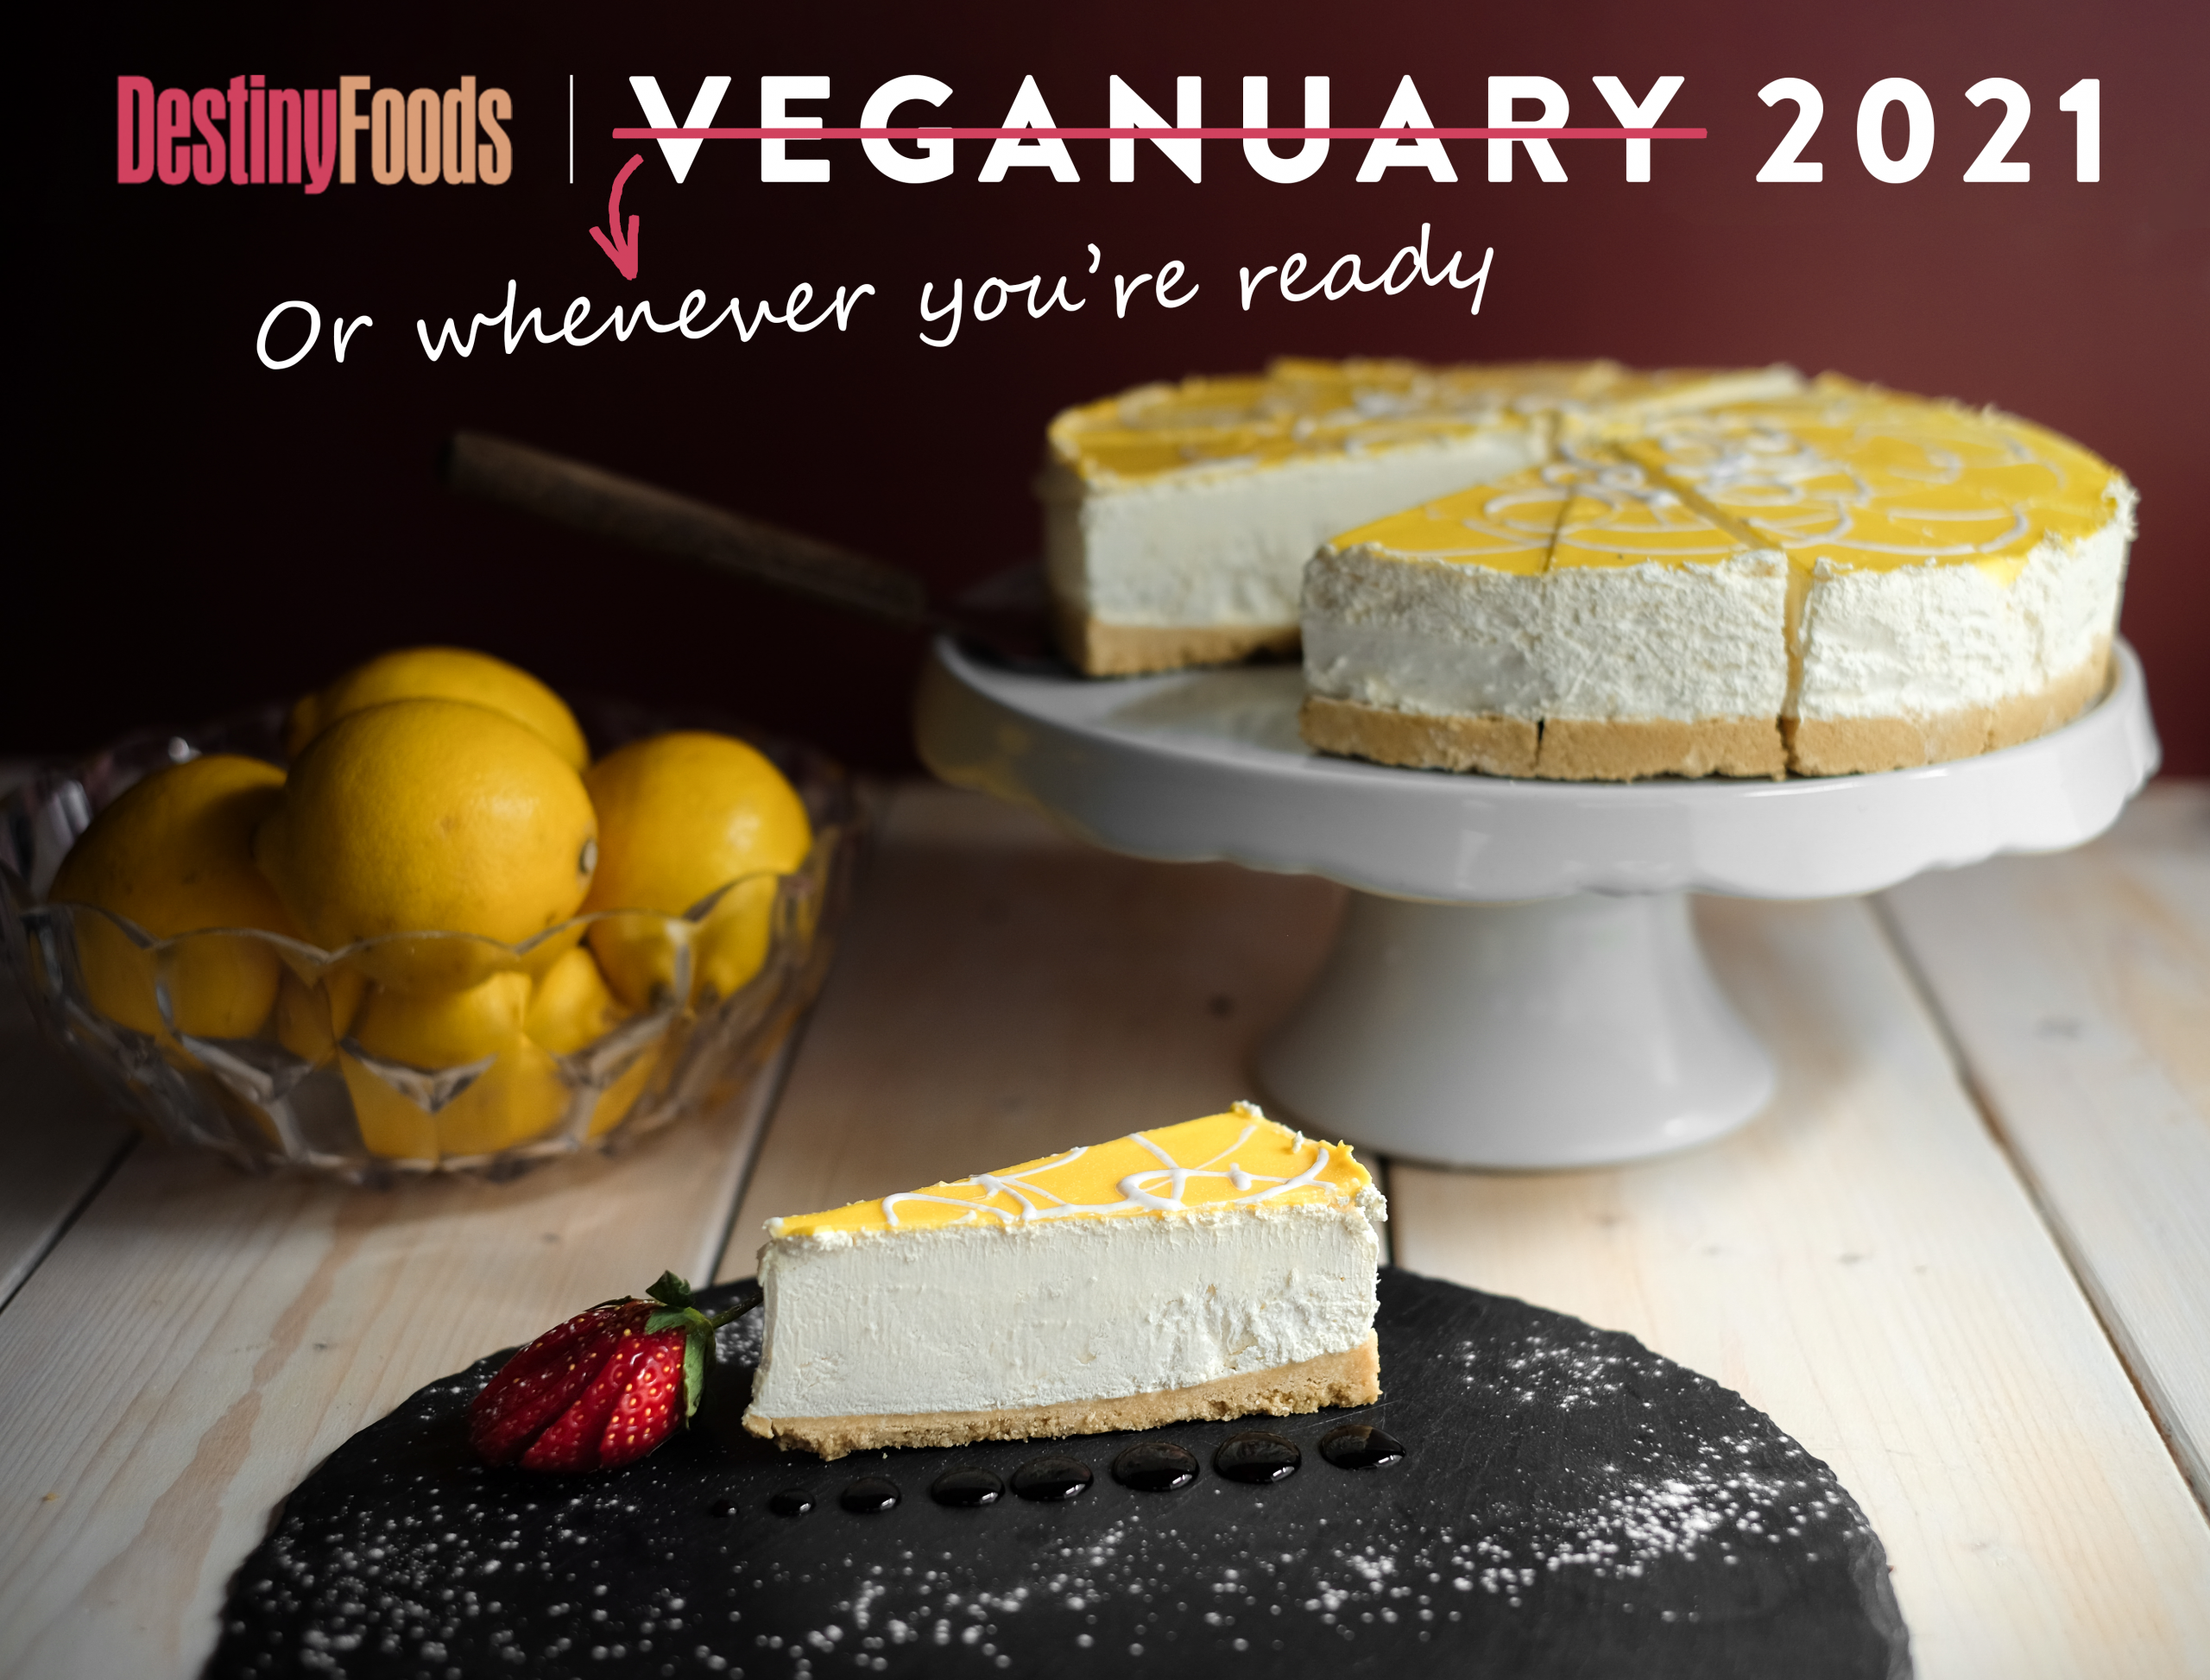 Veganuary is for a month, but dairy-free desserts are forever